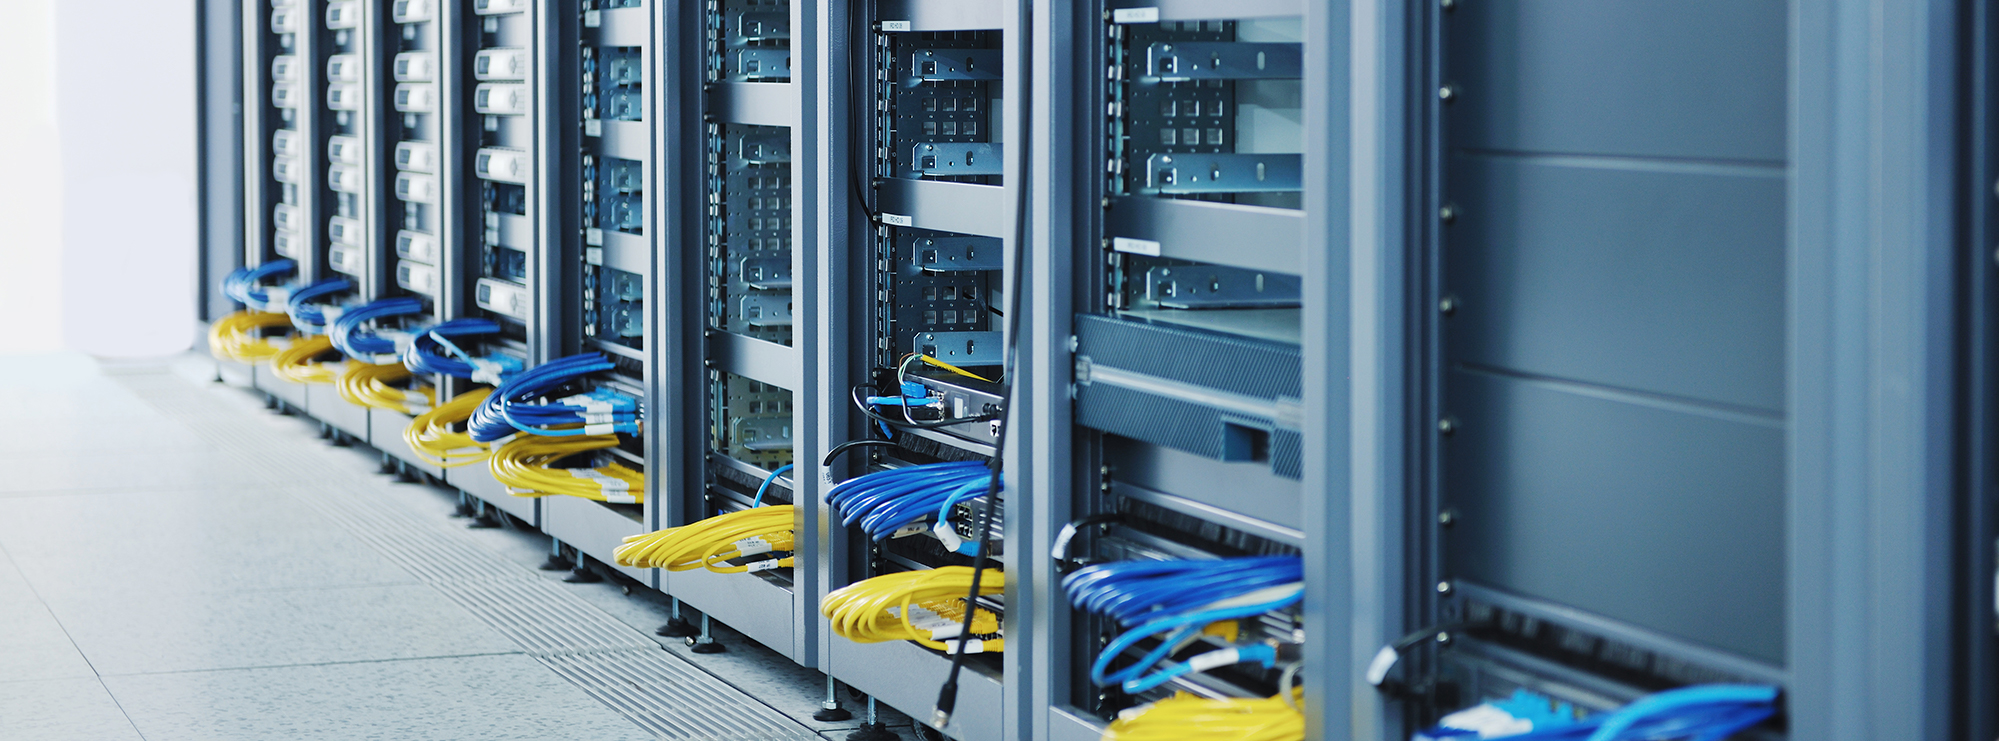 How cabling your data center correctly can decrease cost, increase airflow, reduce energy consumption, and contribute to a highly available data center.. Cover Image